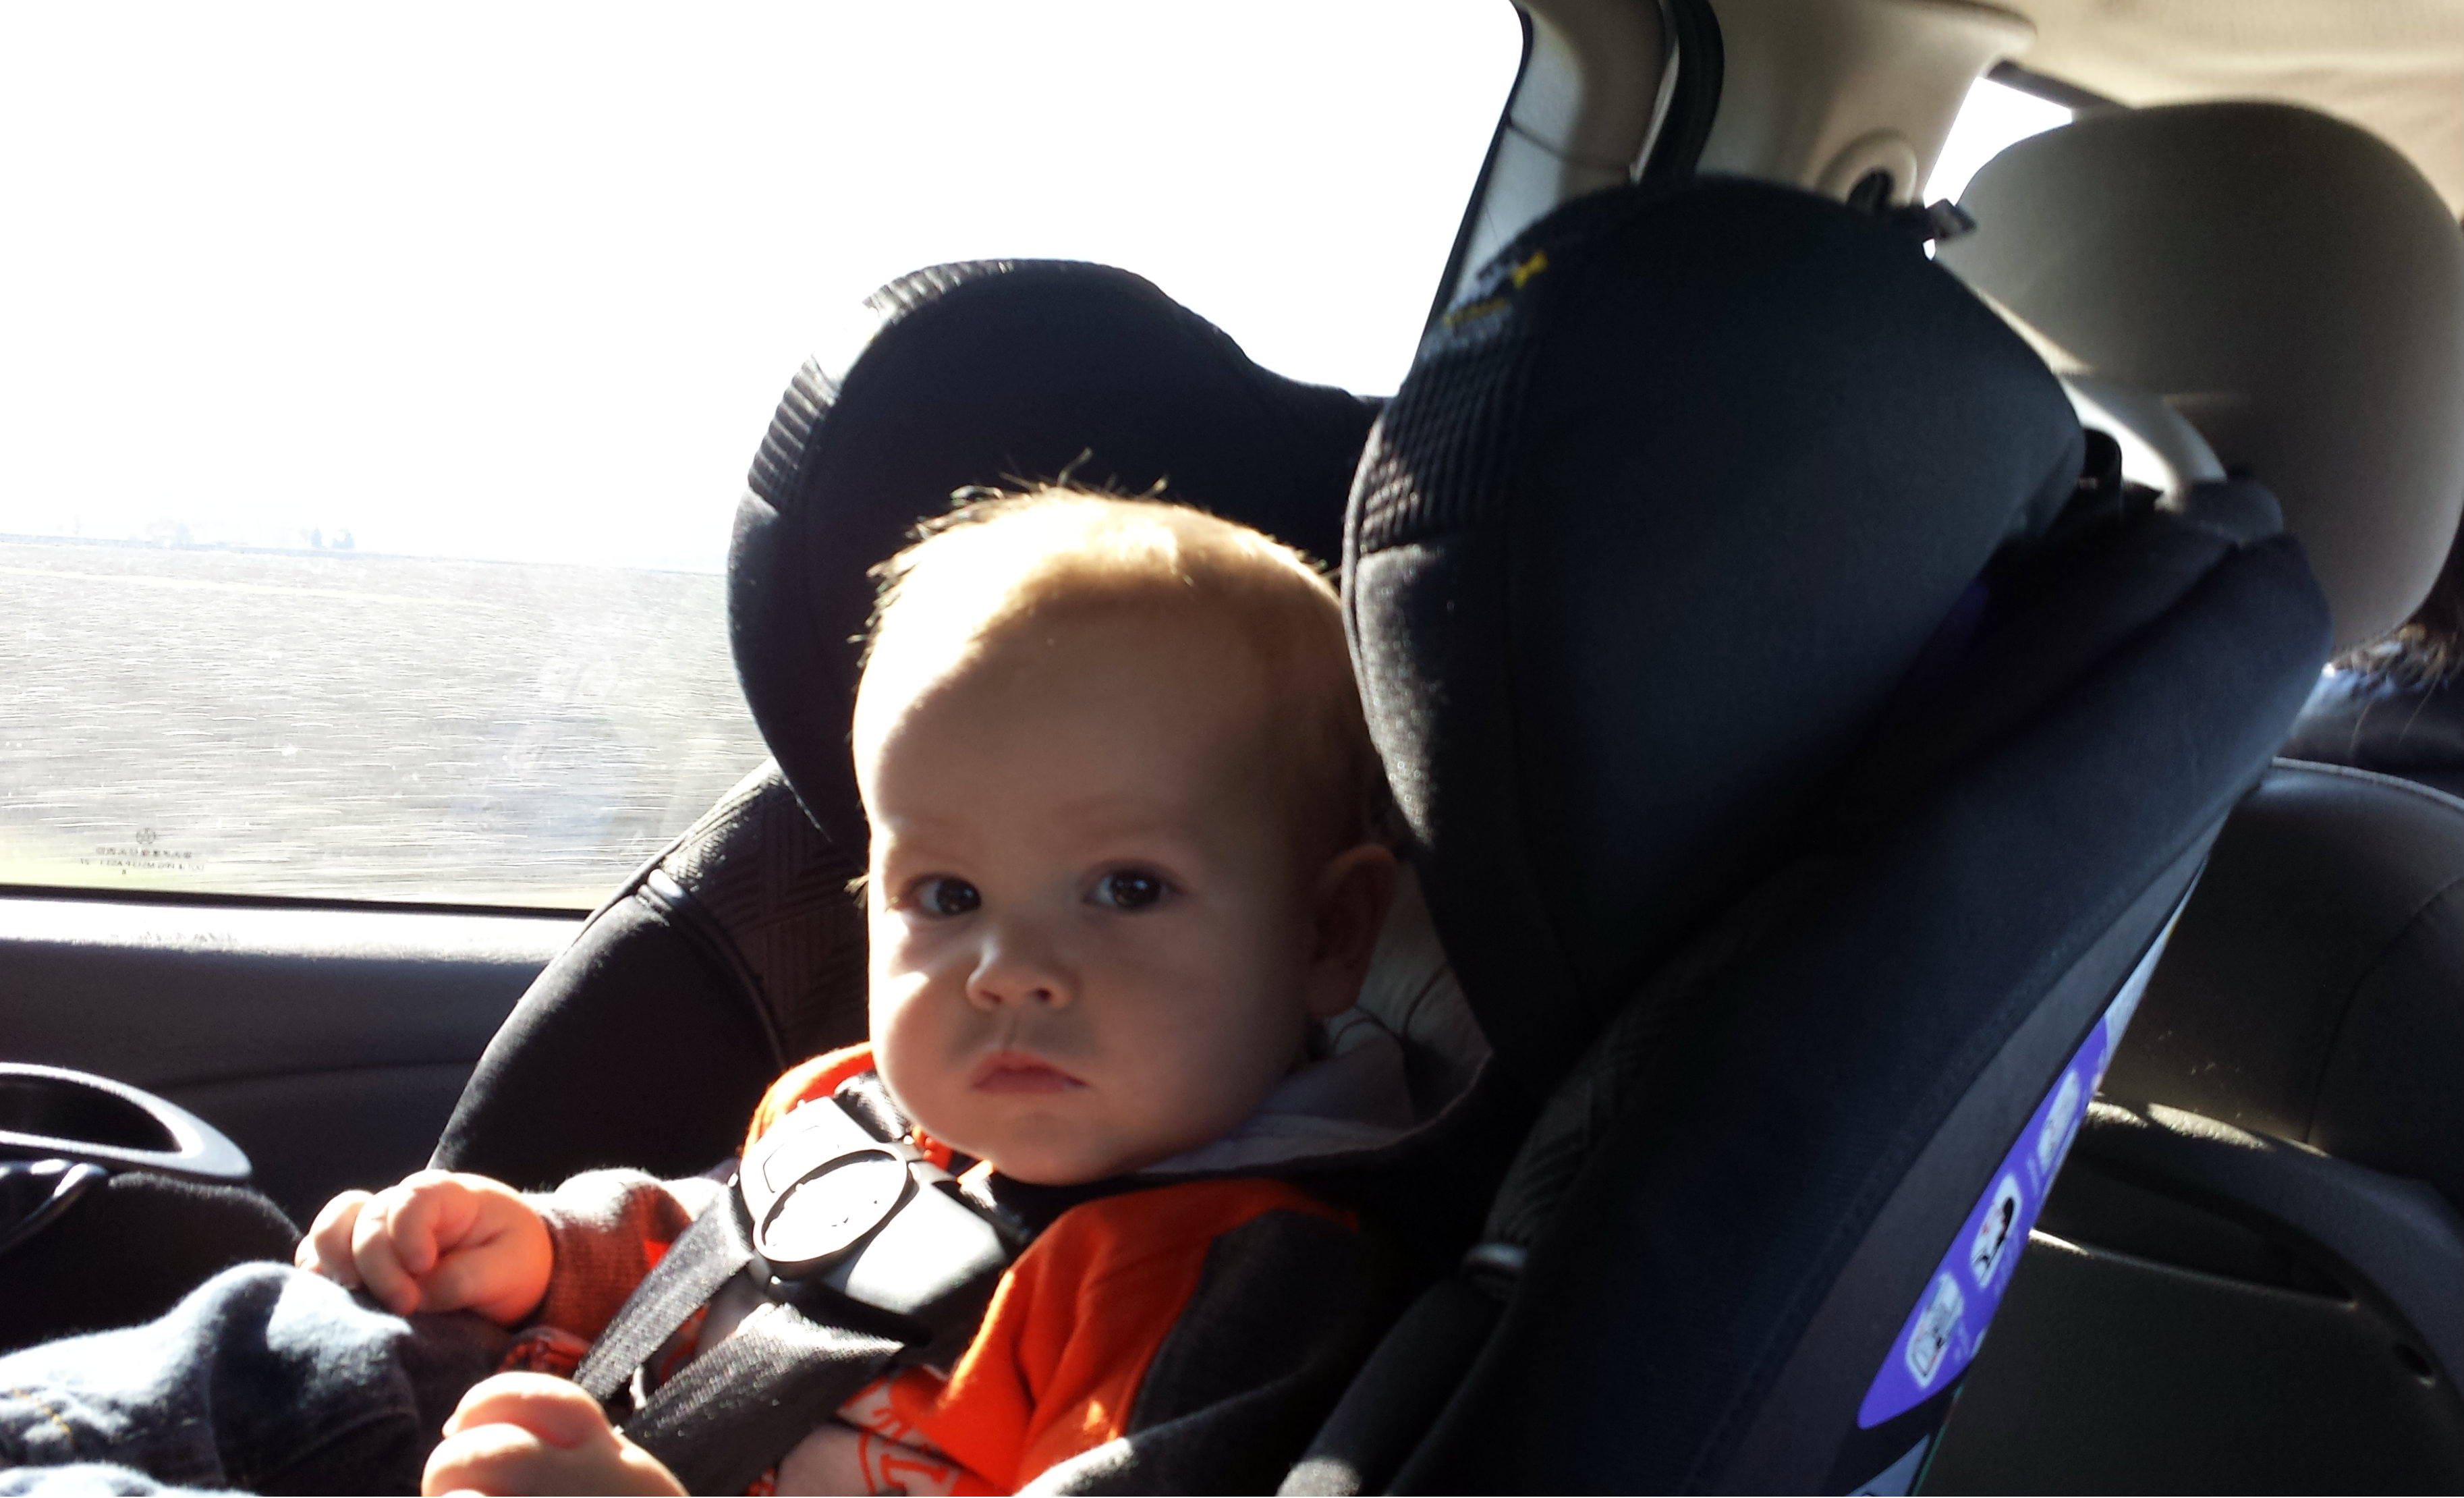 Safety 1st Elite 80 Air 3 In 1 Car Seat Review Momma In Flip Flops